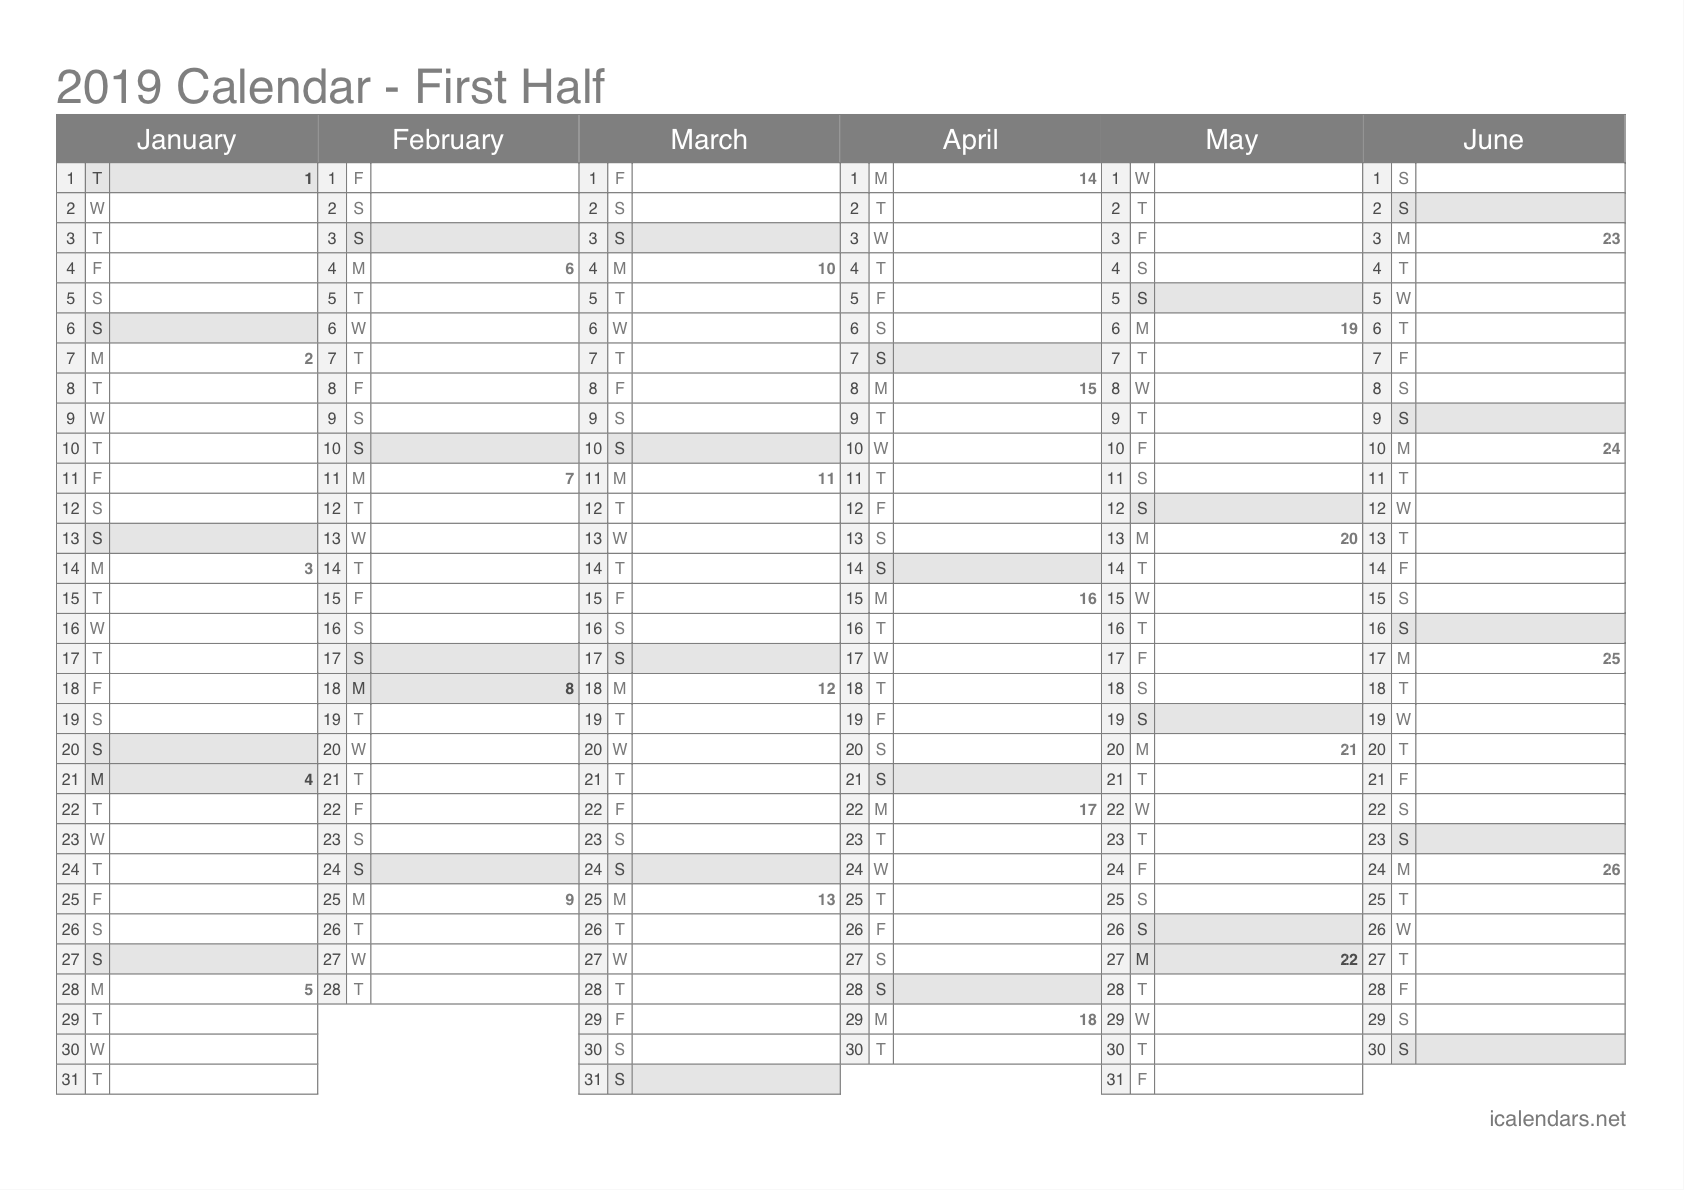 Calendario In Excel 2020.2019 Printable Calendar Pdf Or Excel Icalendars Net